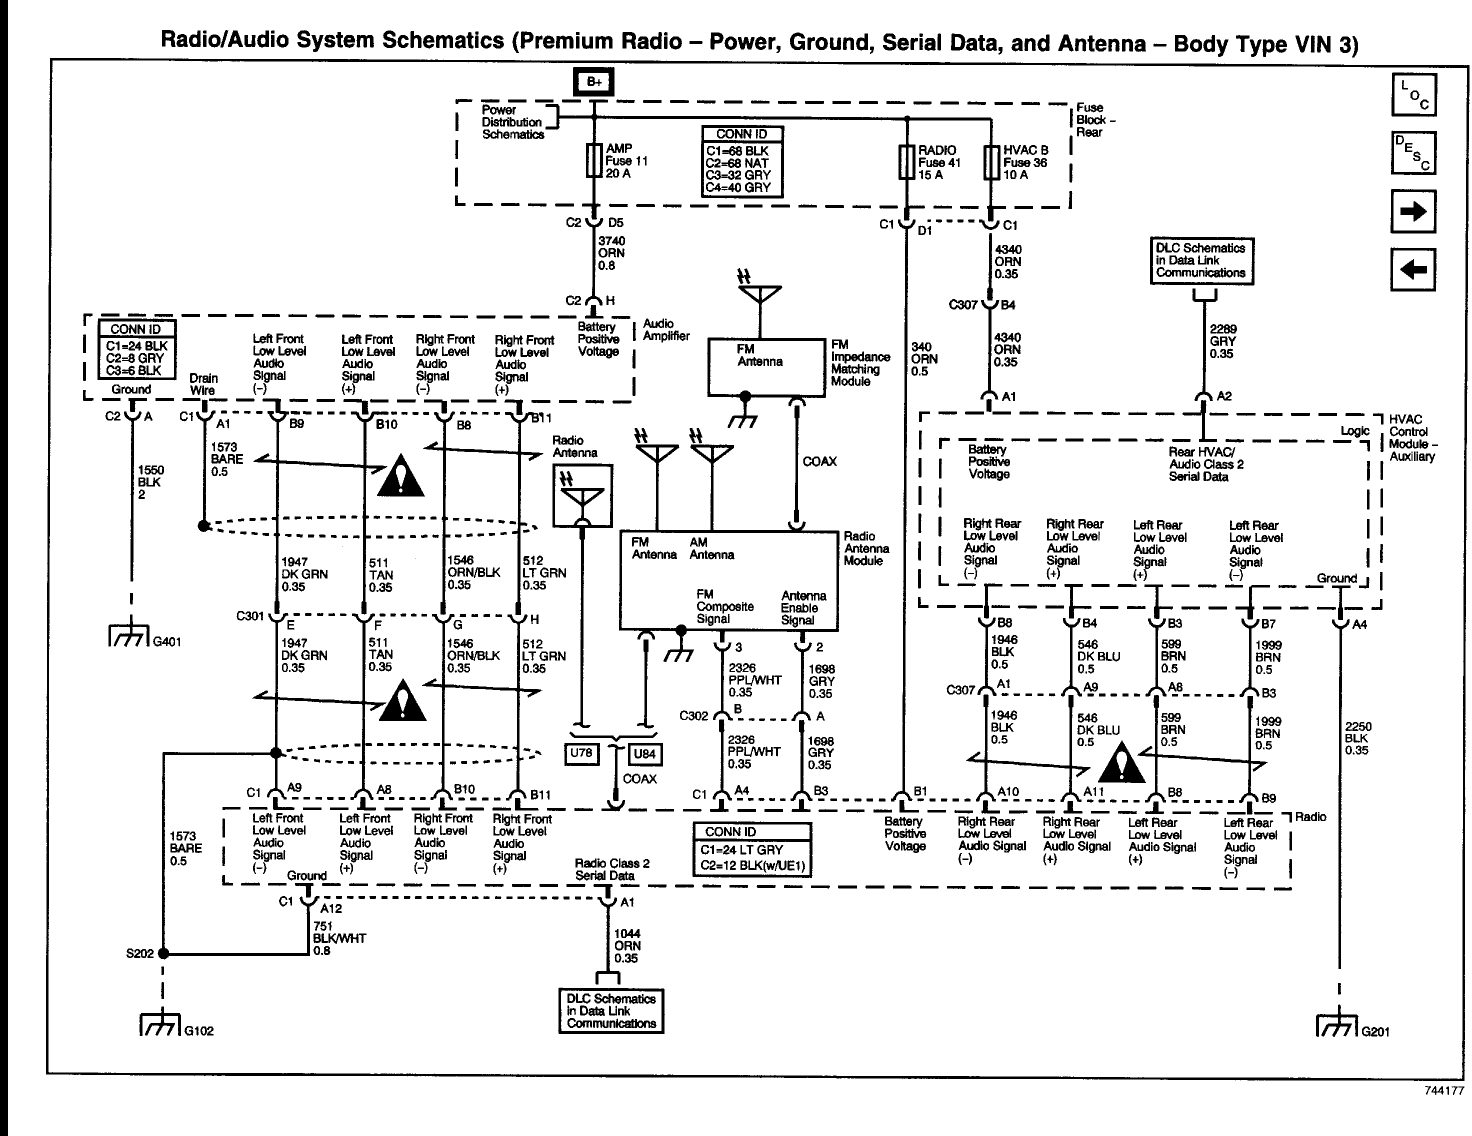 2004 gmc sierra radio wiring diagram | free wiring diagram 08 gmc sierra radio wiring diagram 1989 gmc sierra radio wiring diagrams